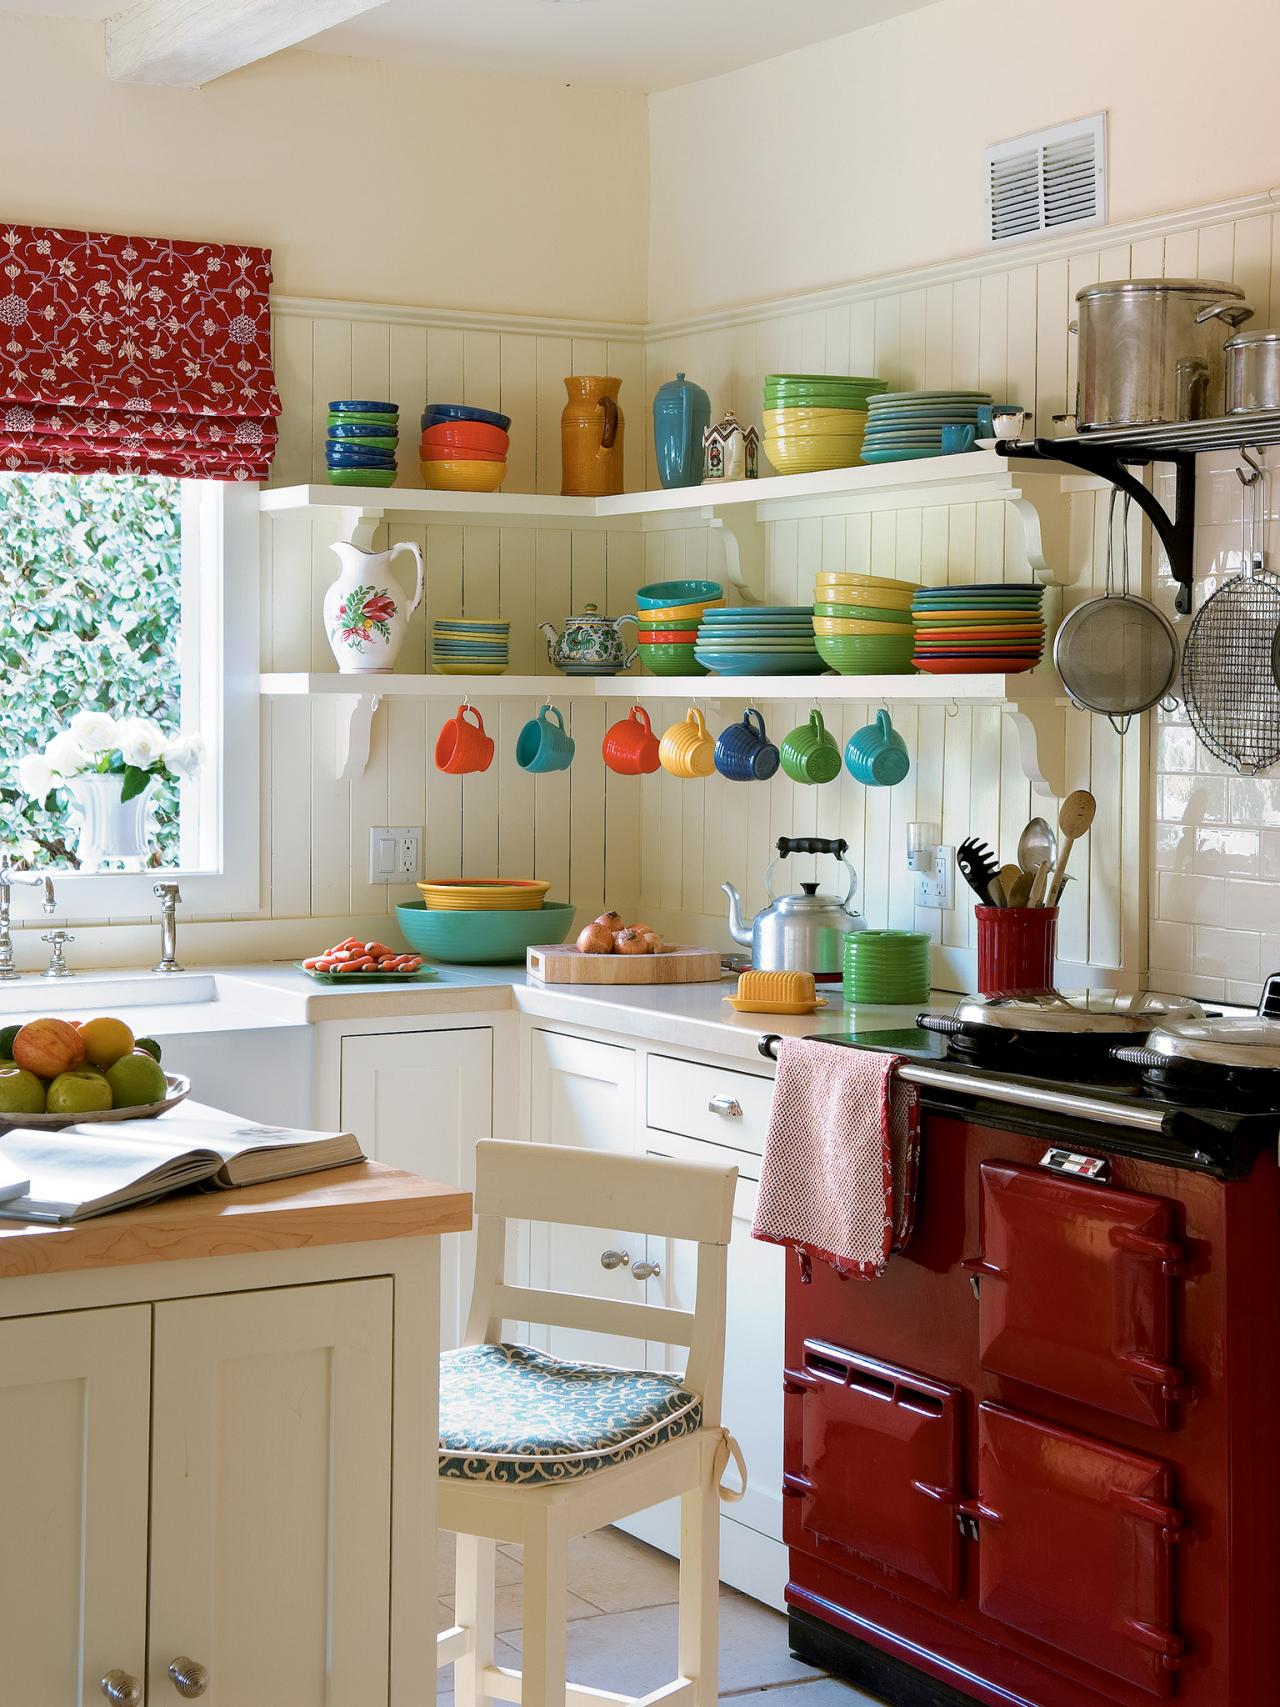 30 Top Small Kitchen Ideas And Designs For 2017 Wow Decor